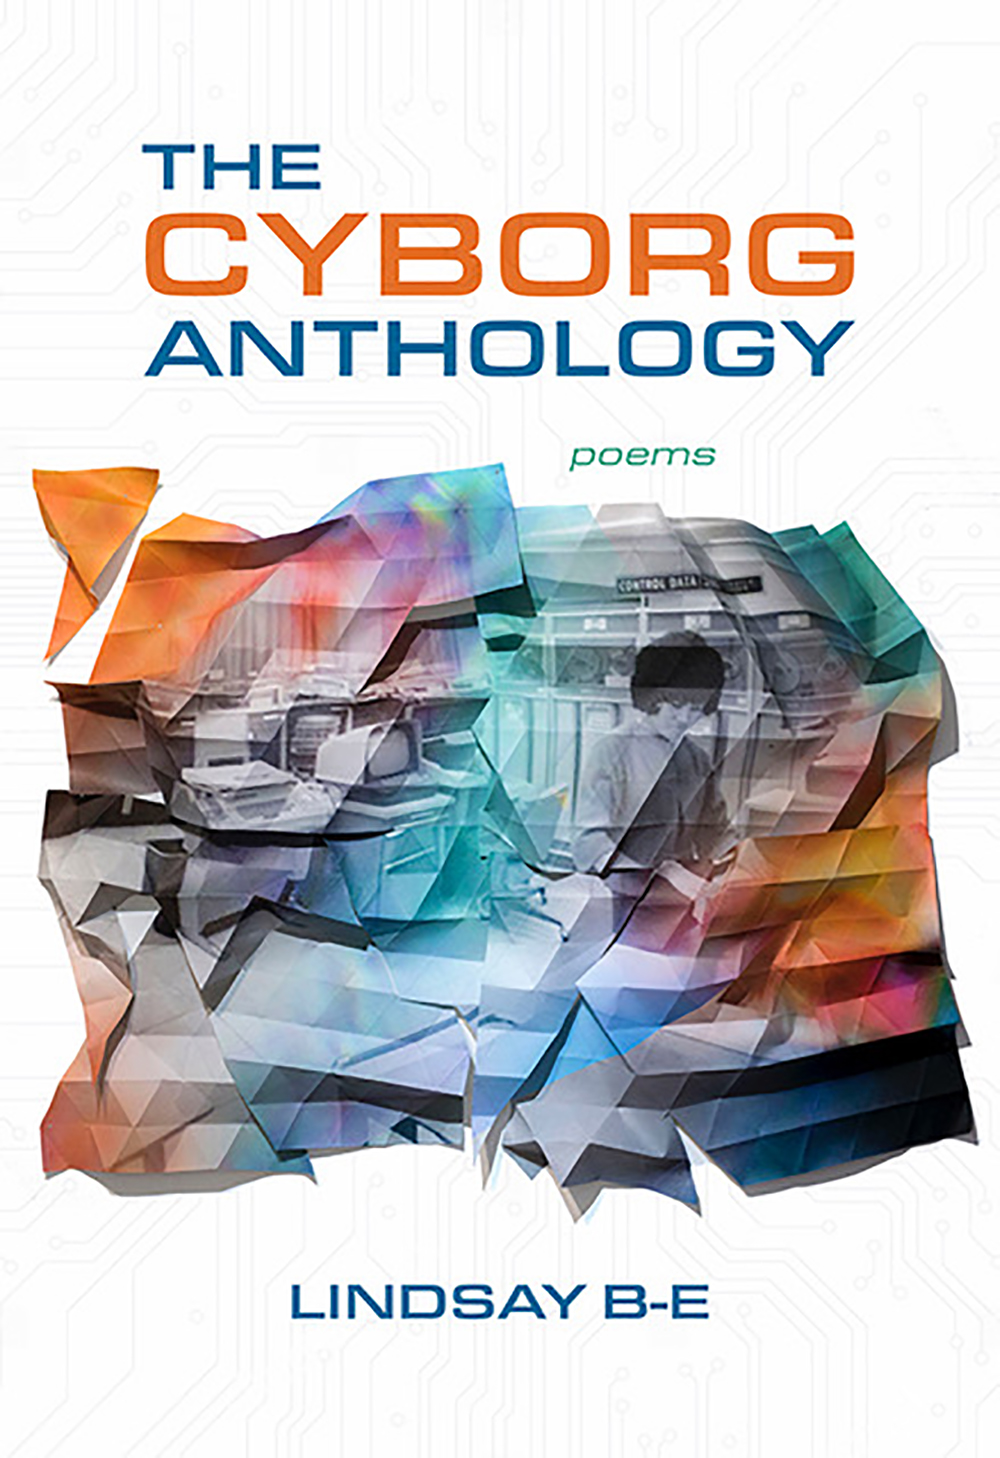 The Cyborg Anthology